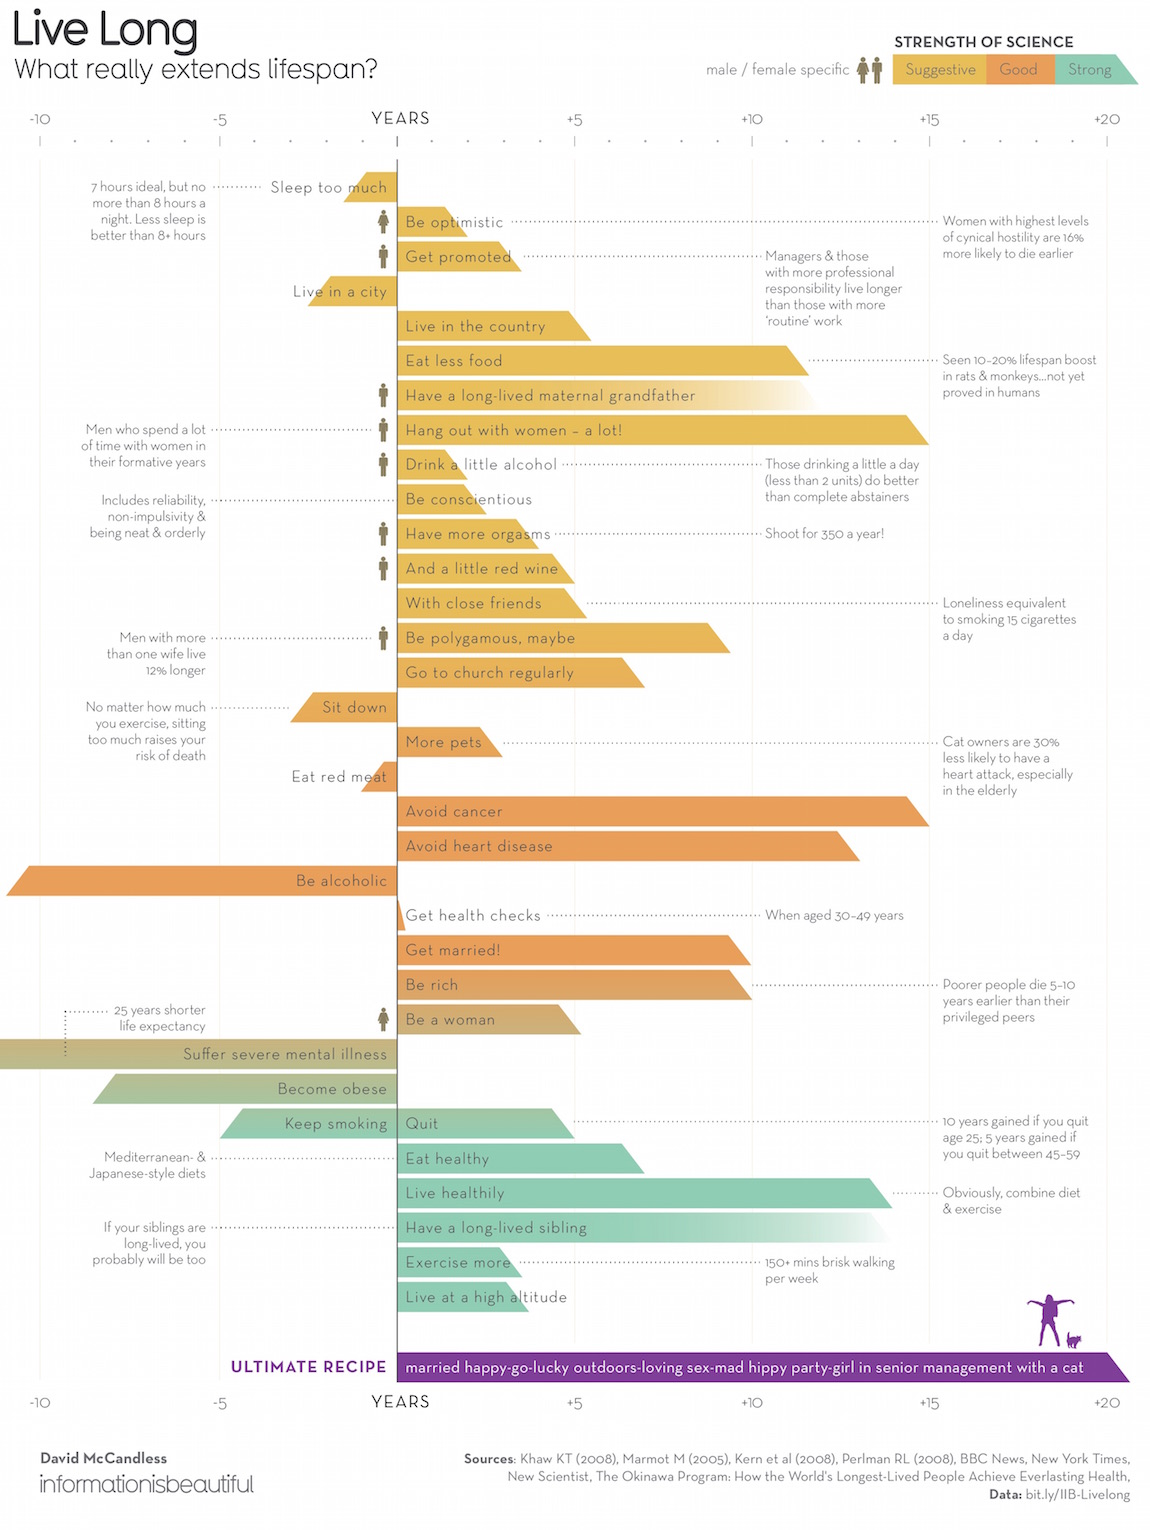 For A Long Lifespan Data Visualizer Extraordinaire David McCandless Made Clever Chart Showing The Extent To Which Number Of Habits And Traits Can